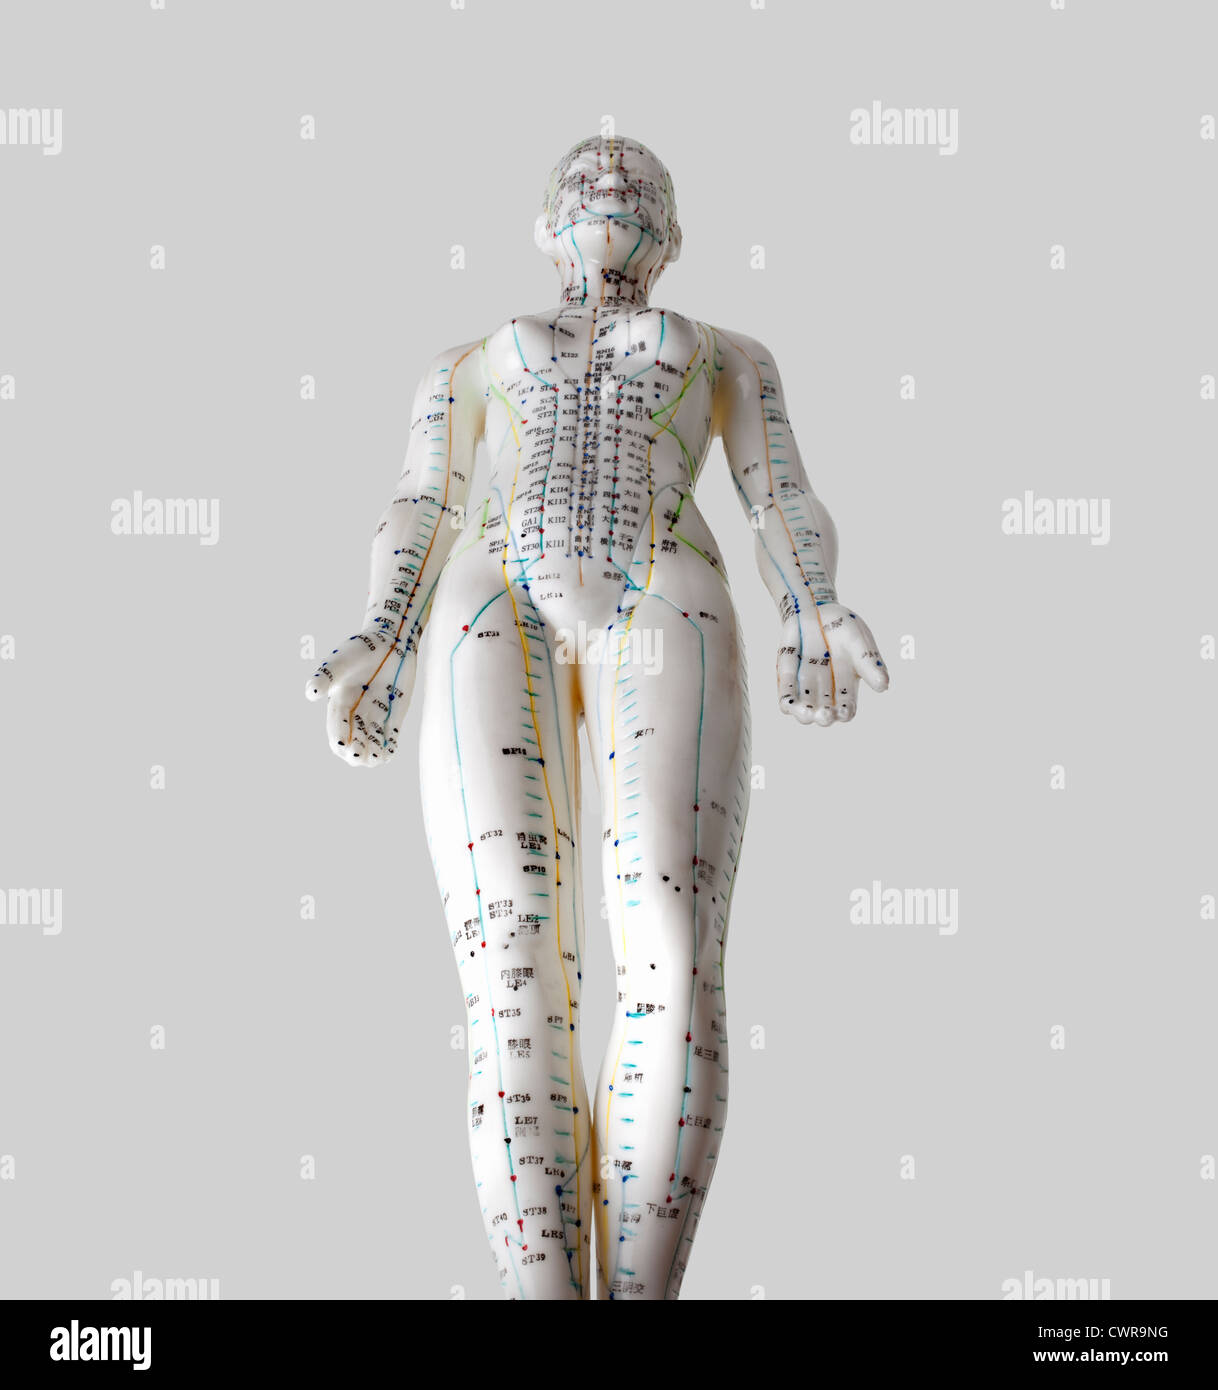 Acupuncture Body Model Stock Photos & Acupuncture Body Model Stock